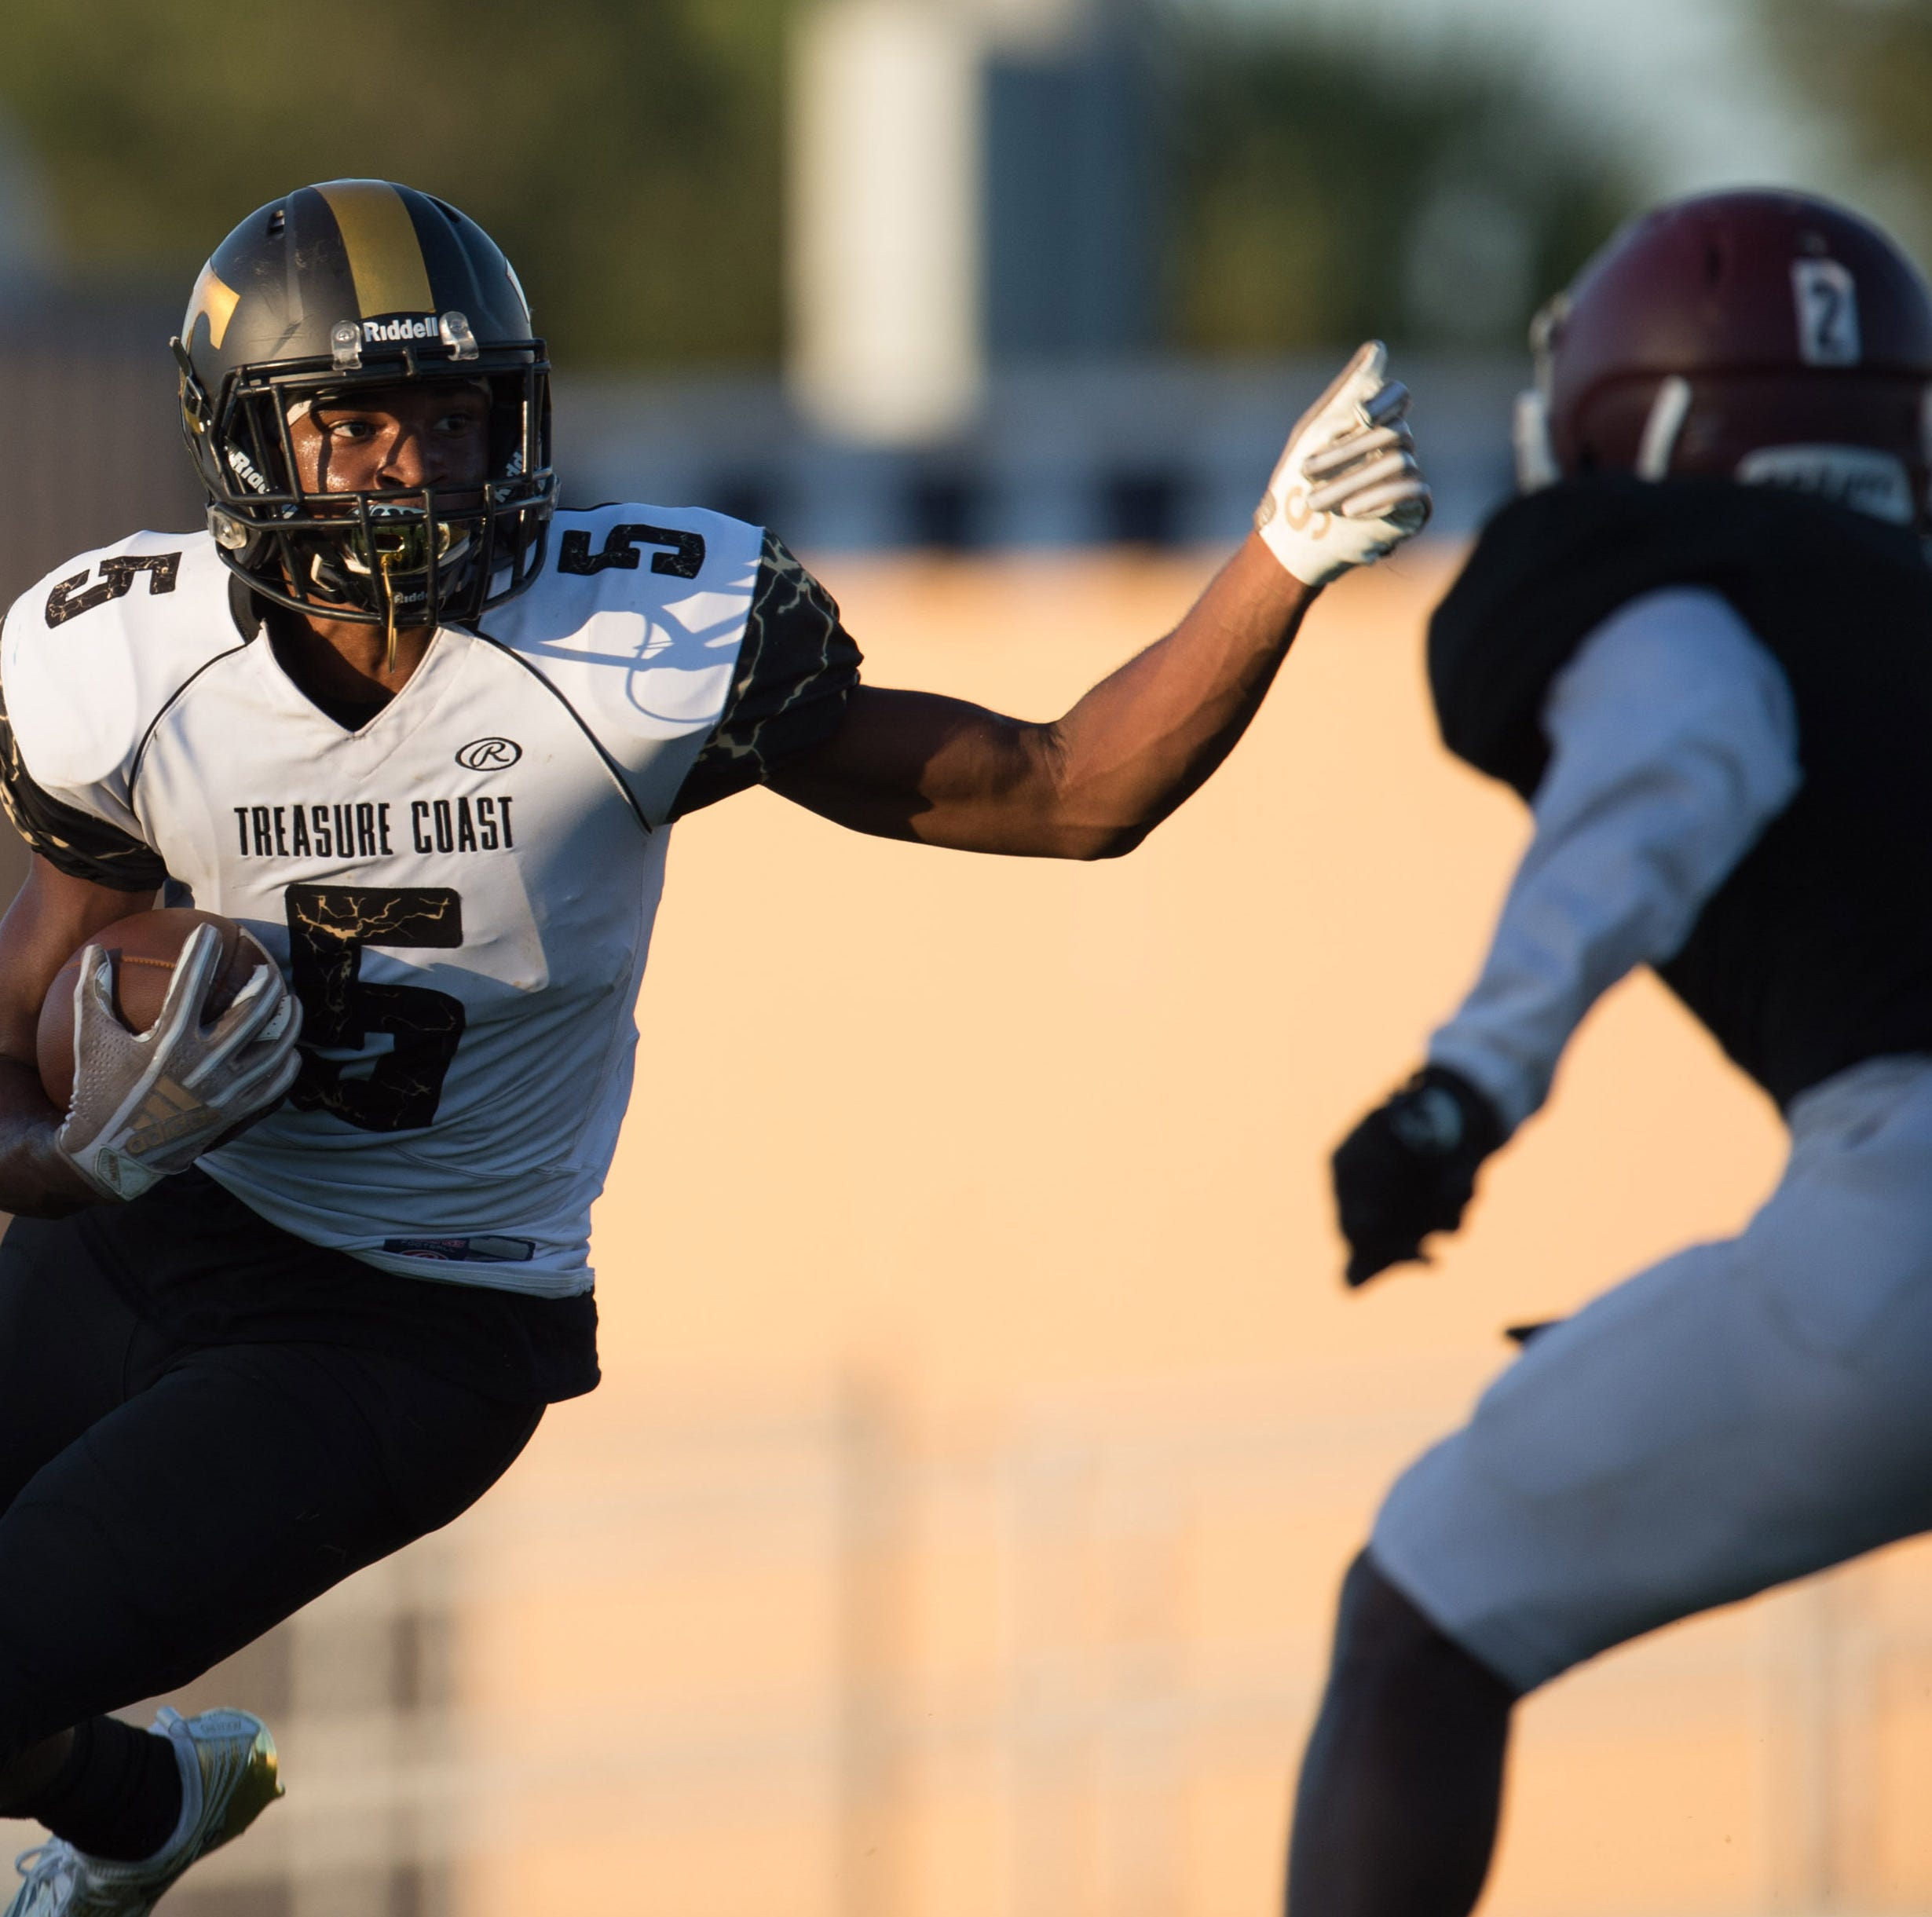 Preseason football: Run game powers Treasure Coast